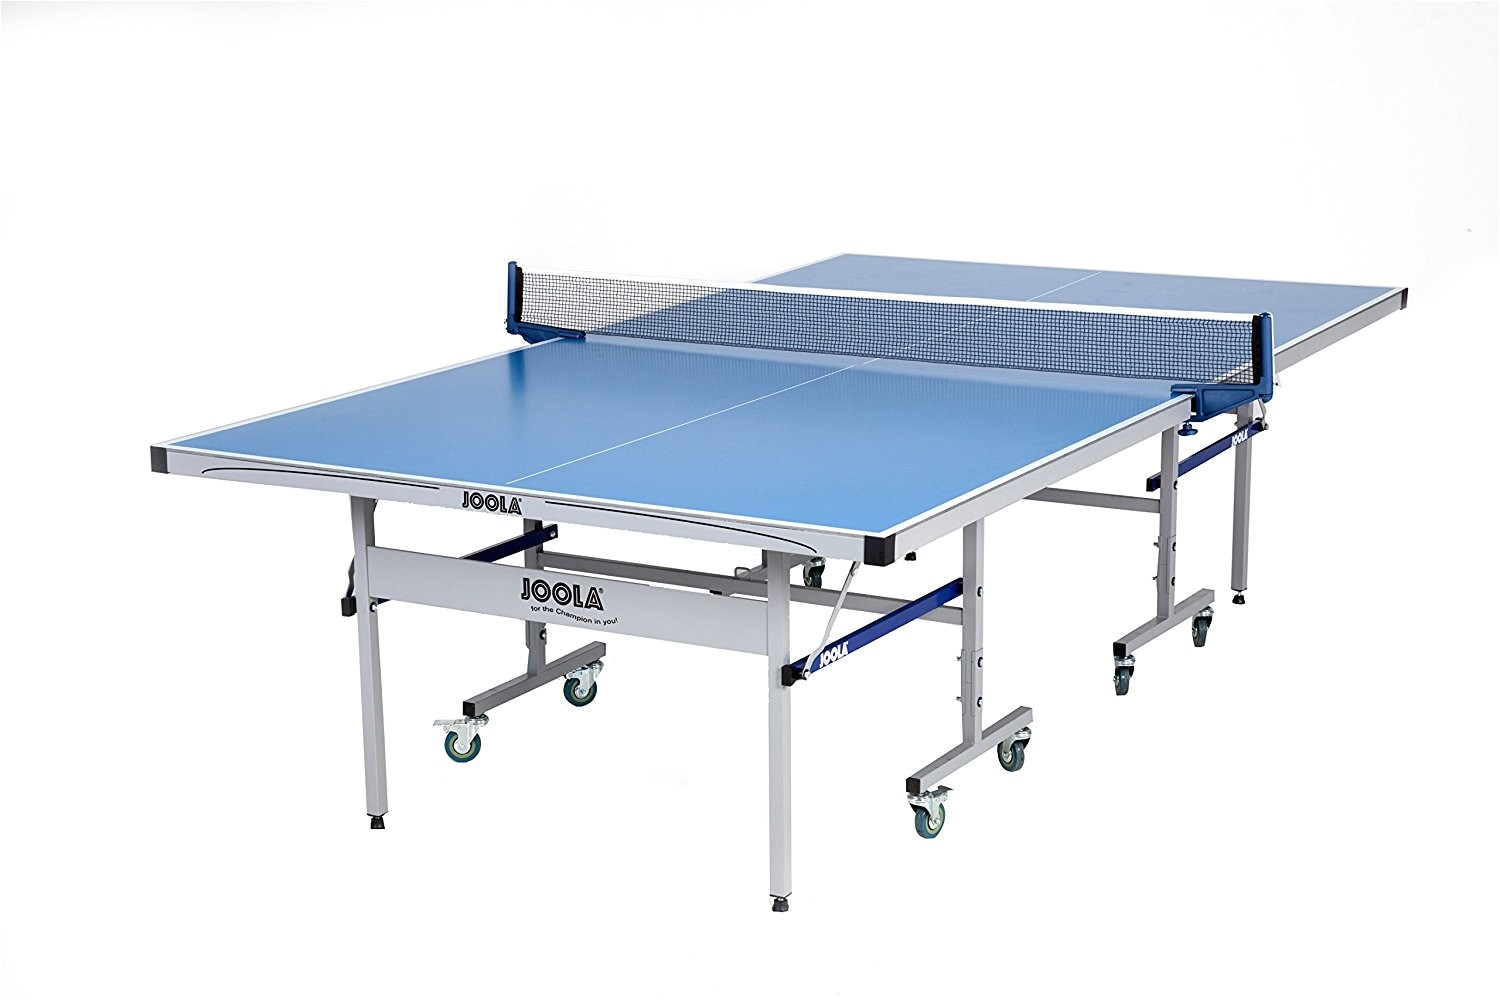 Joola Nova Dx Outdoor Ping Pong Table Joola Nova Dx Outdoor Indoor All Weather Table Tennis